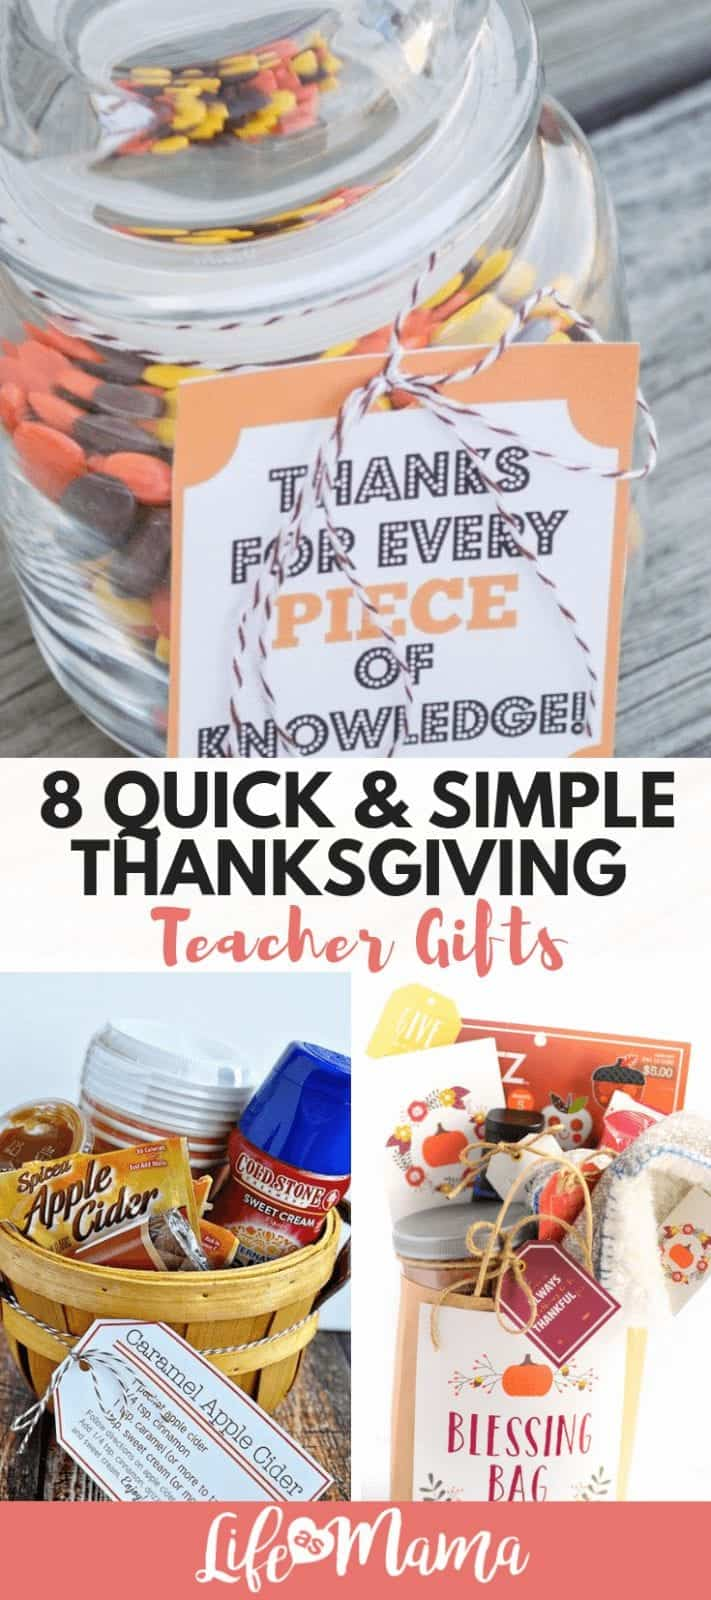 8 Quick Simple Thanksgiving Teacher Gifts